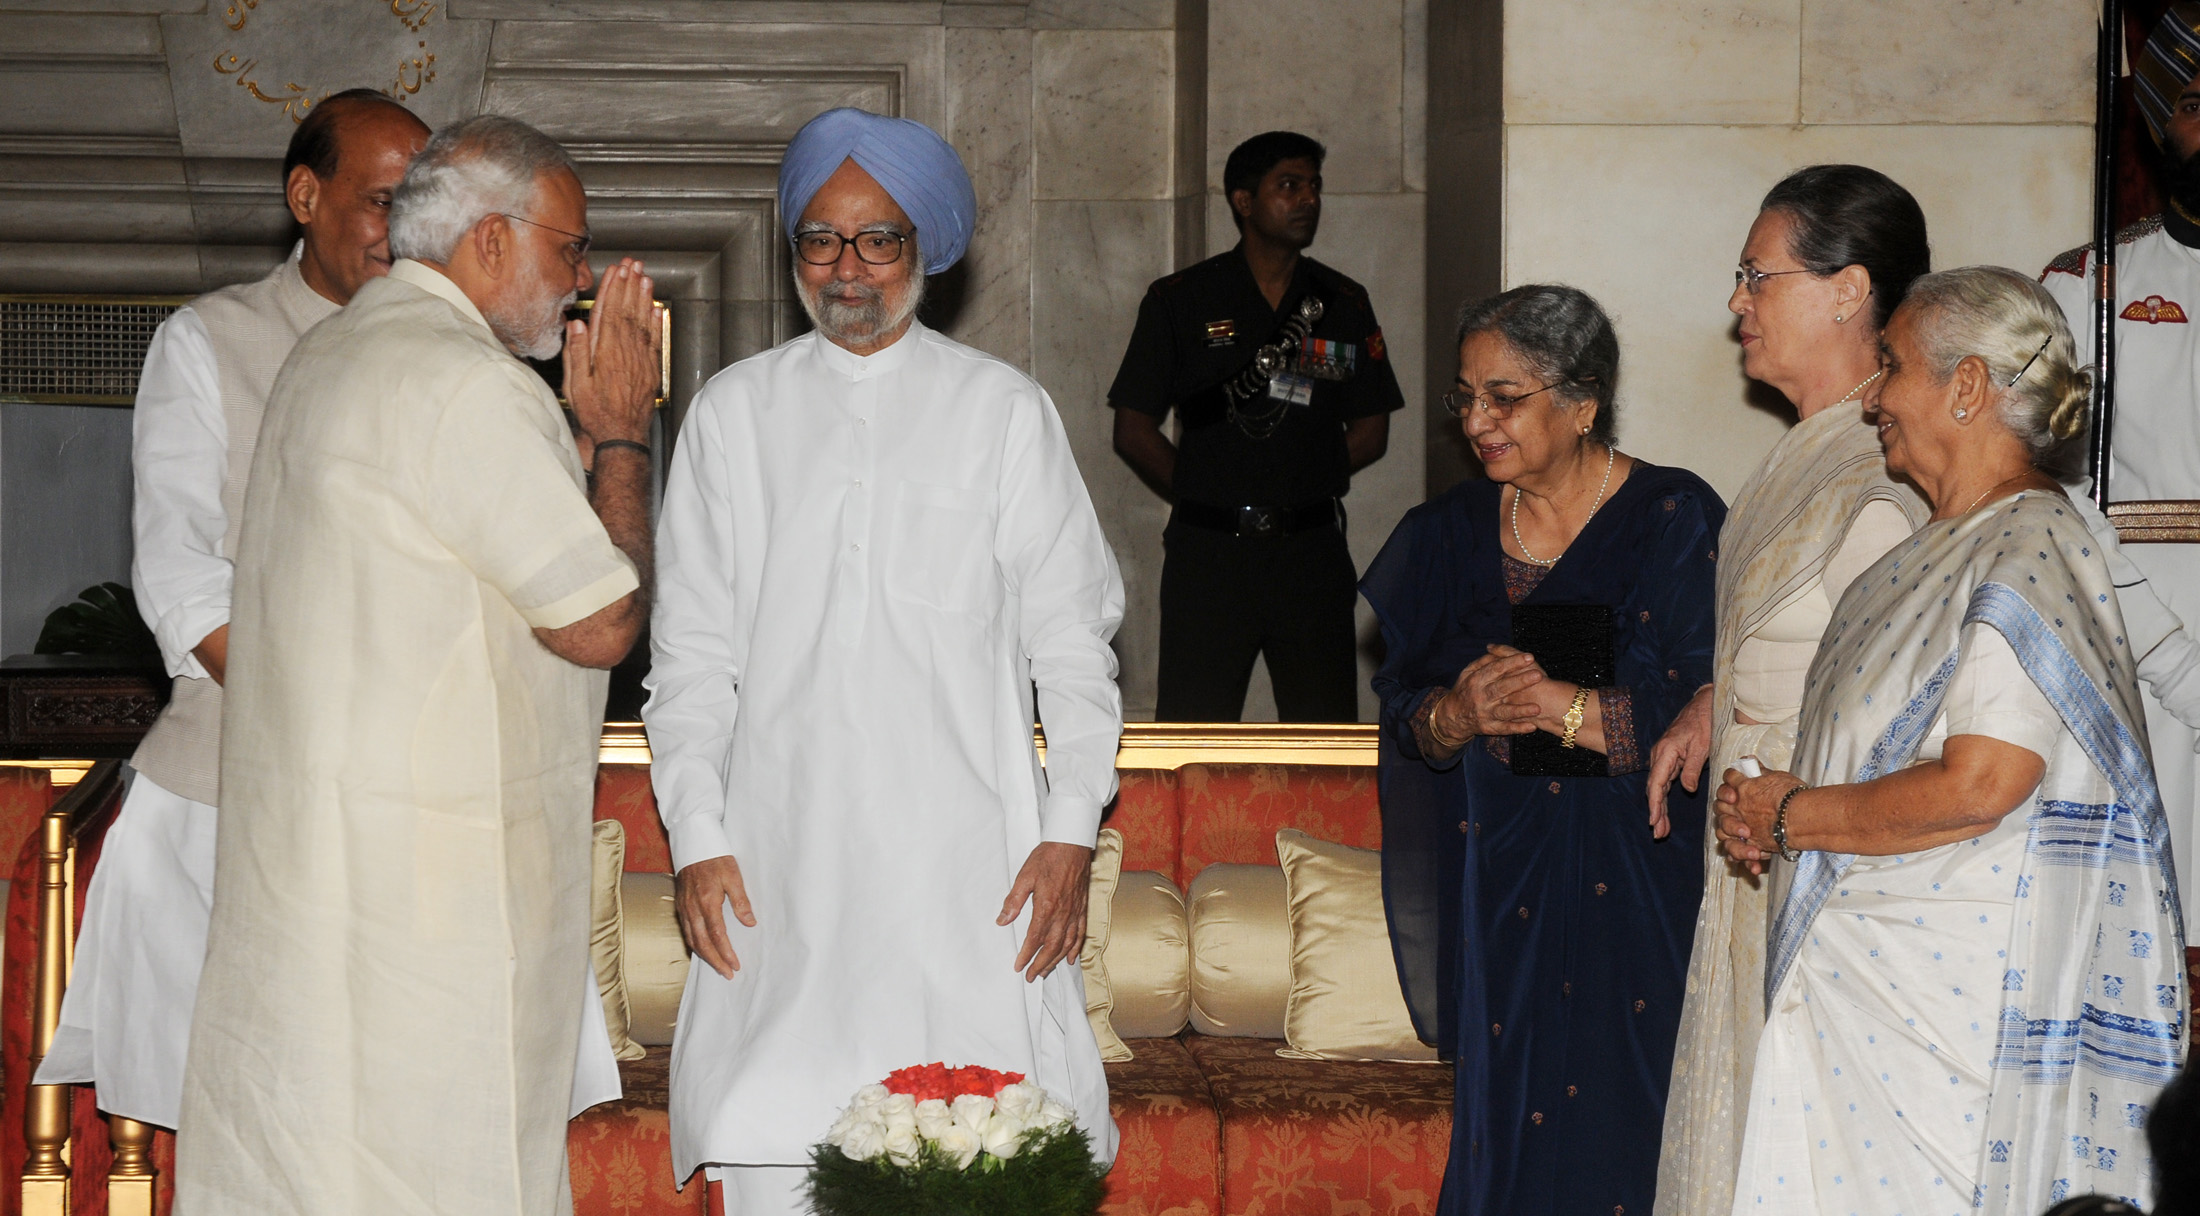 The Prime Minister, Shri Narendra Modi with the former Prime Minister, Dr. Manmohan Singh at the 'At Home' function, organised on the occasion of 69th Independence Day, at Rashtrapati Bhavan, in Delhi on August 15, 2015. The Union Home Minister, Shri Rajnath Singh and other dignitaries are also seen.